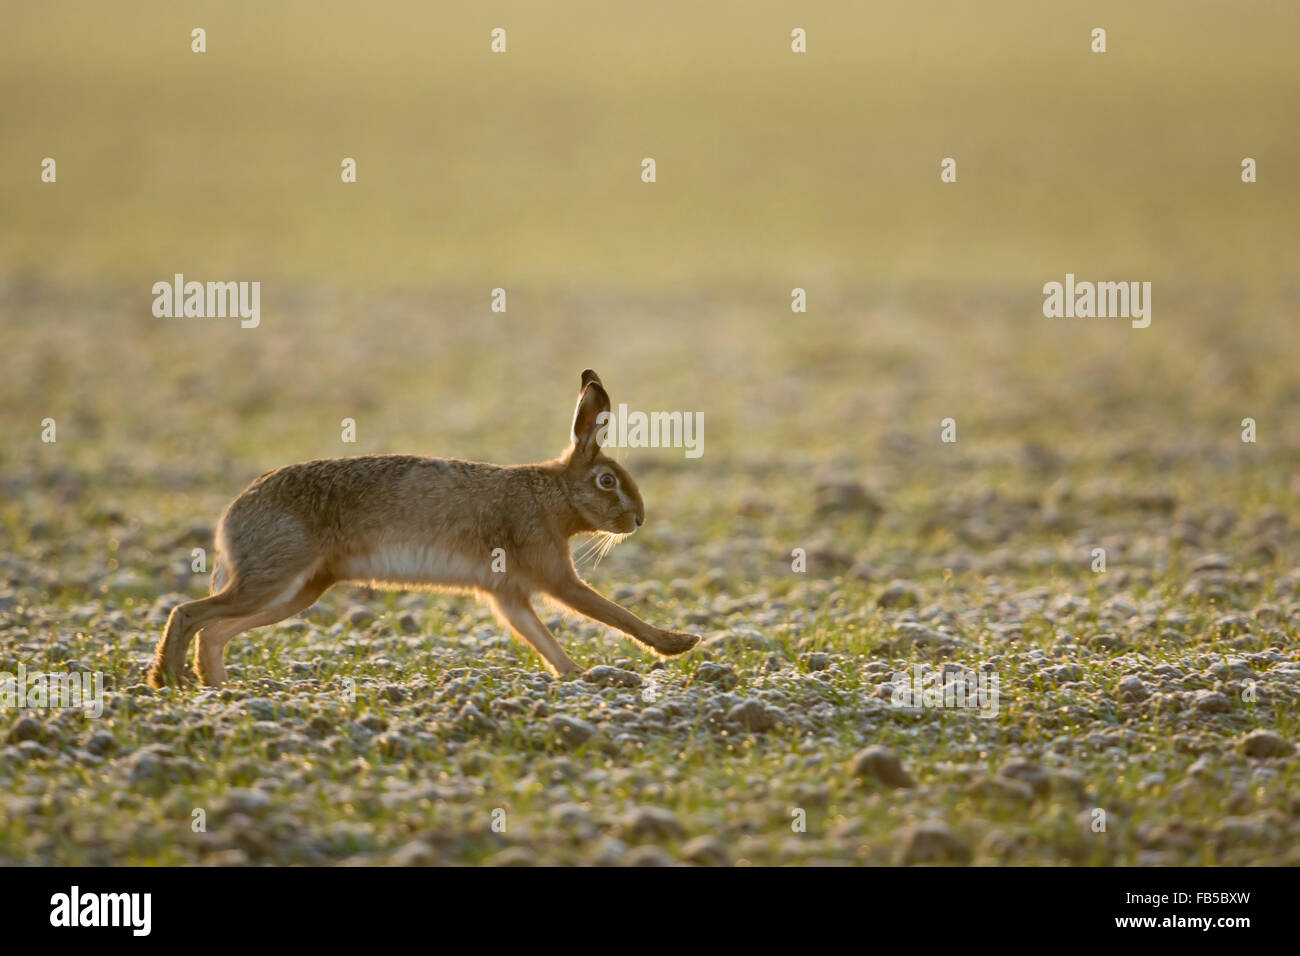 Brown Hare / European Hare / Feldhase ( Lepus europaeus ) running over a field of winter wheat, in soft backlight - Stock Image